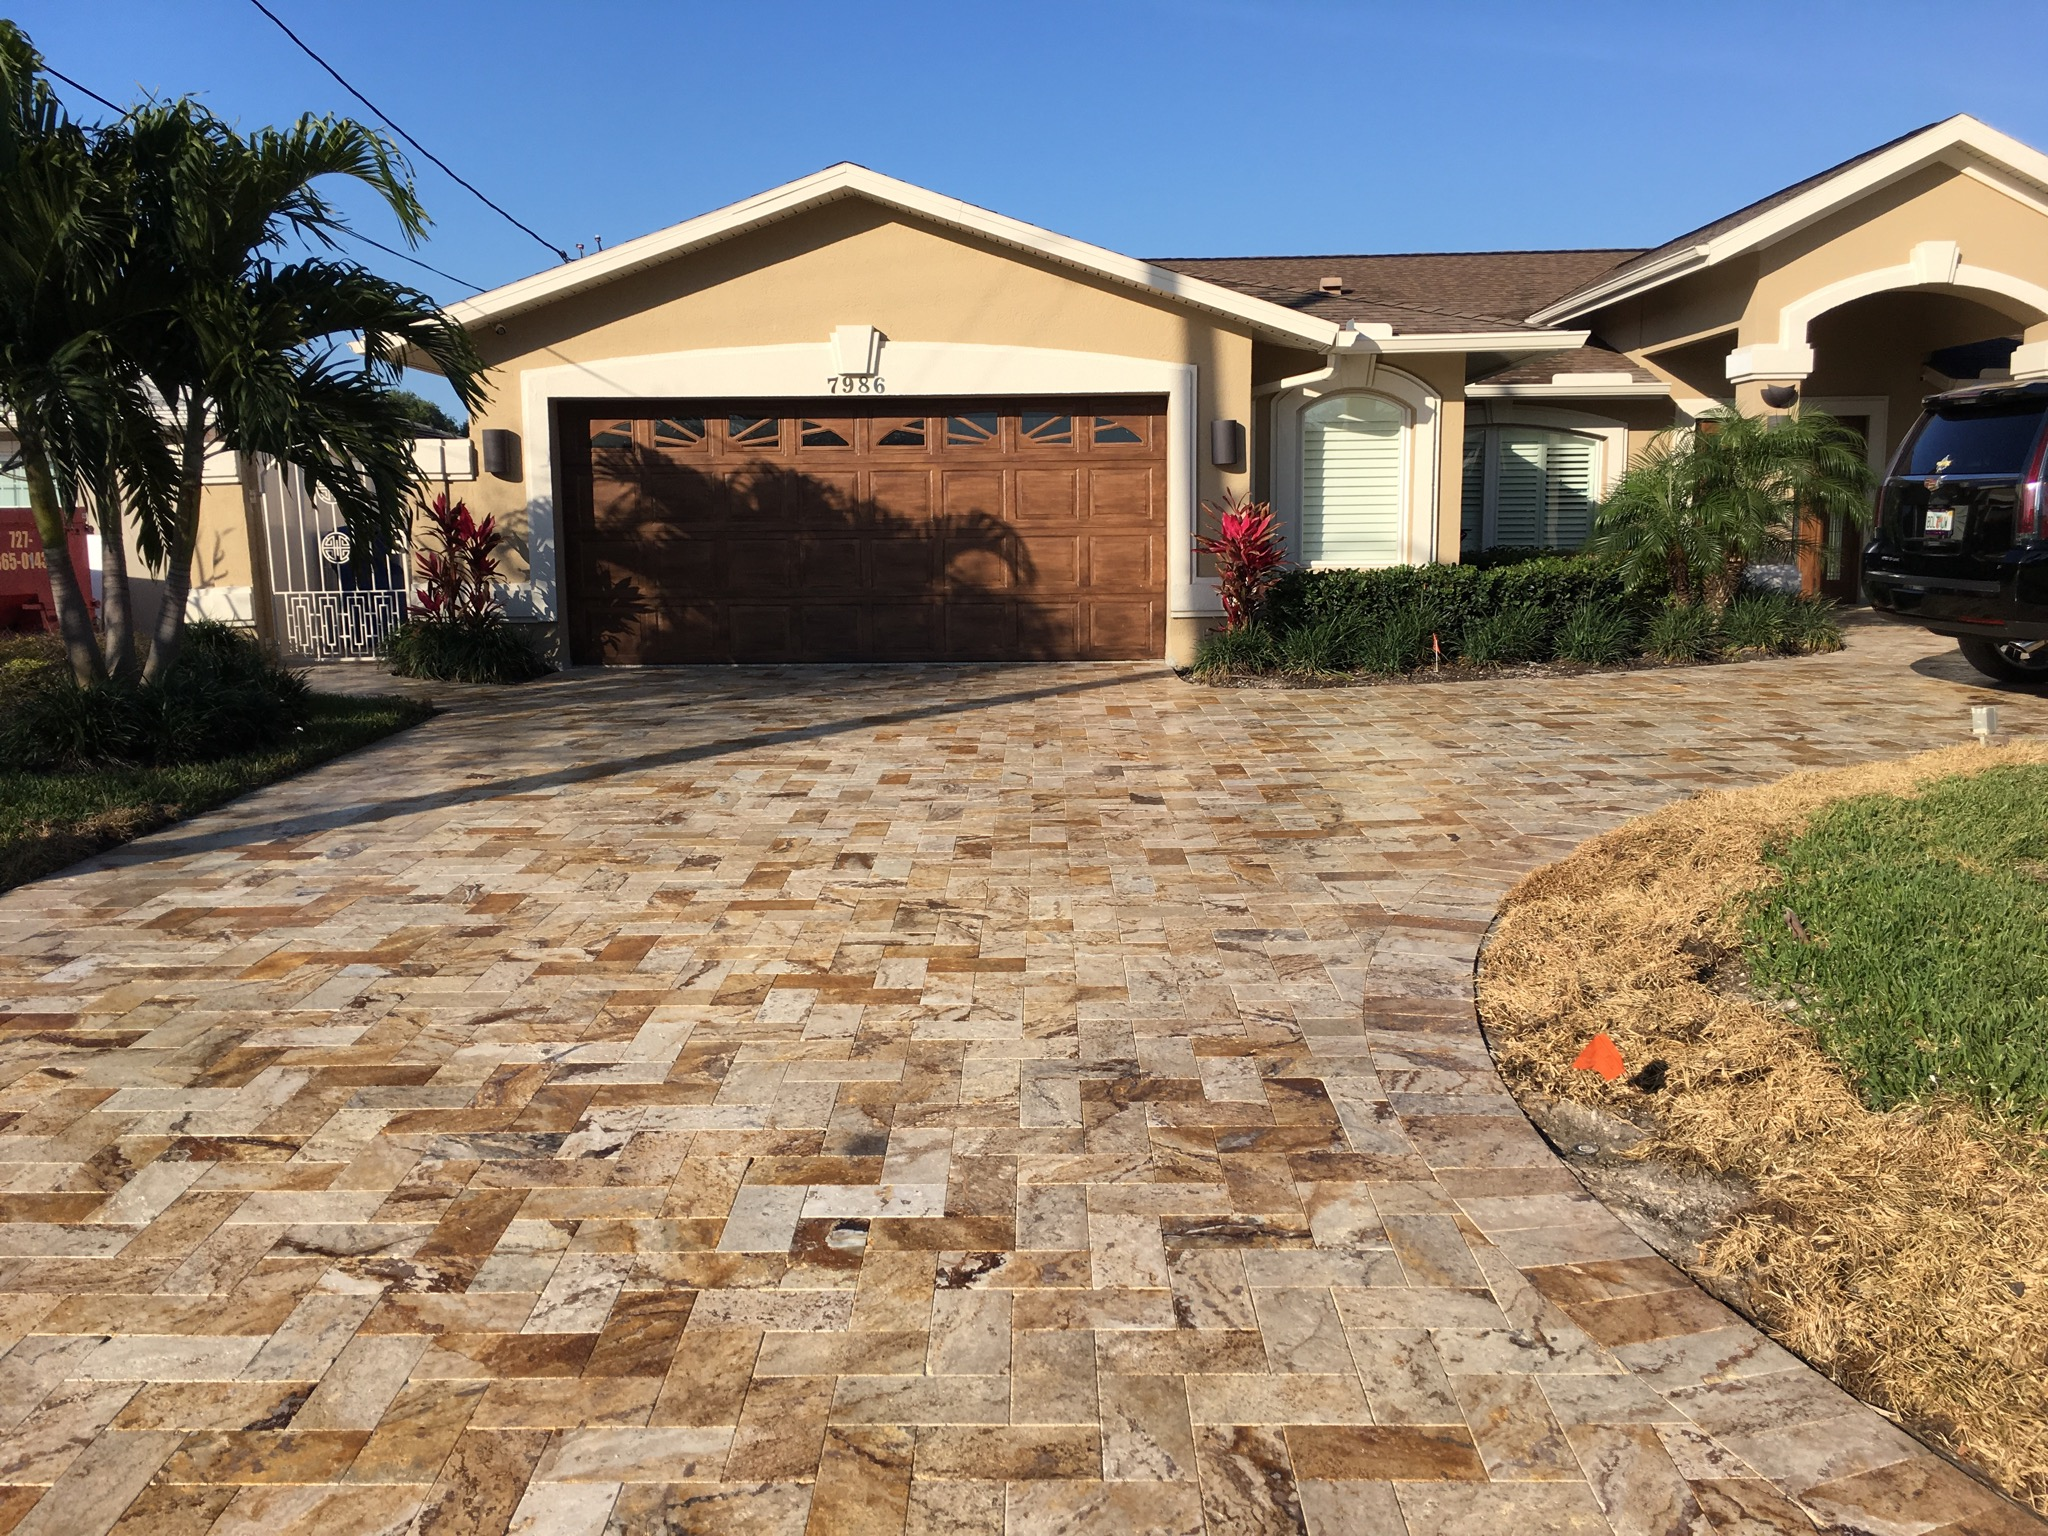 ... Patg Brick Pavers Curb Nyc Aitensomexico Org Painting Driveway Patg  Brick Pavers Curb Nyc Front Porch Makeover With Painted Paver Stones So  Much Better ...